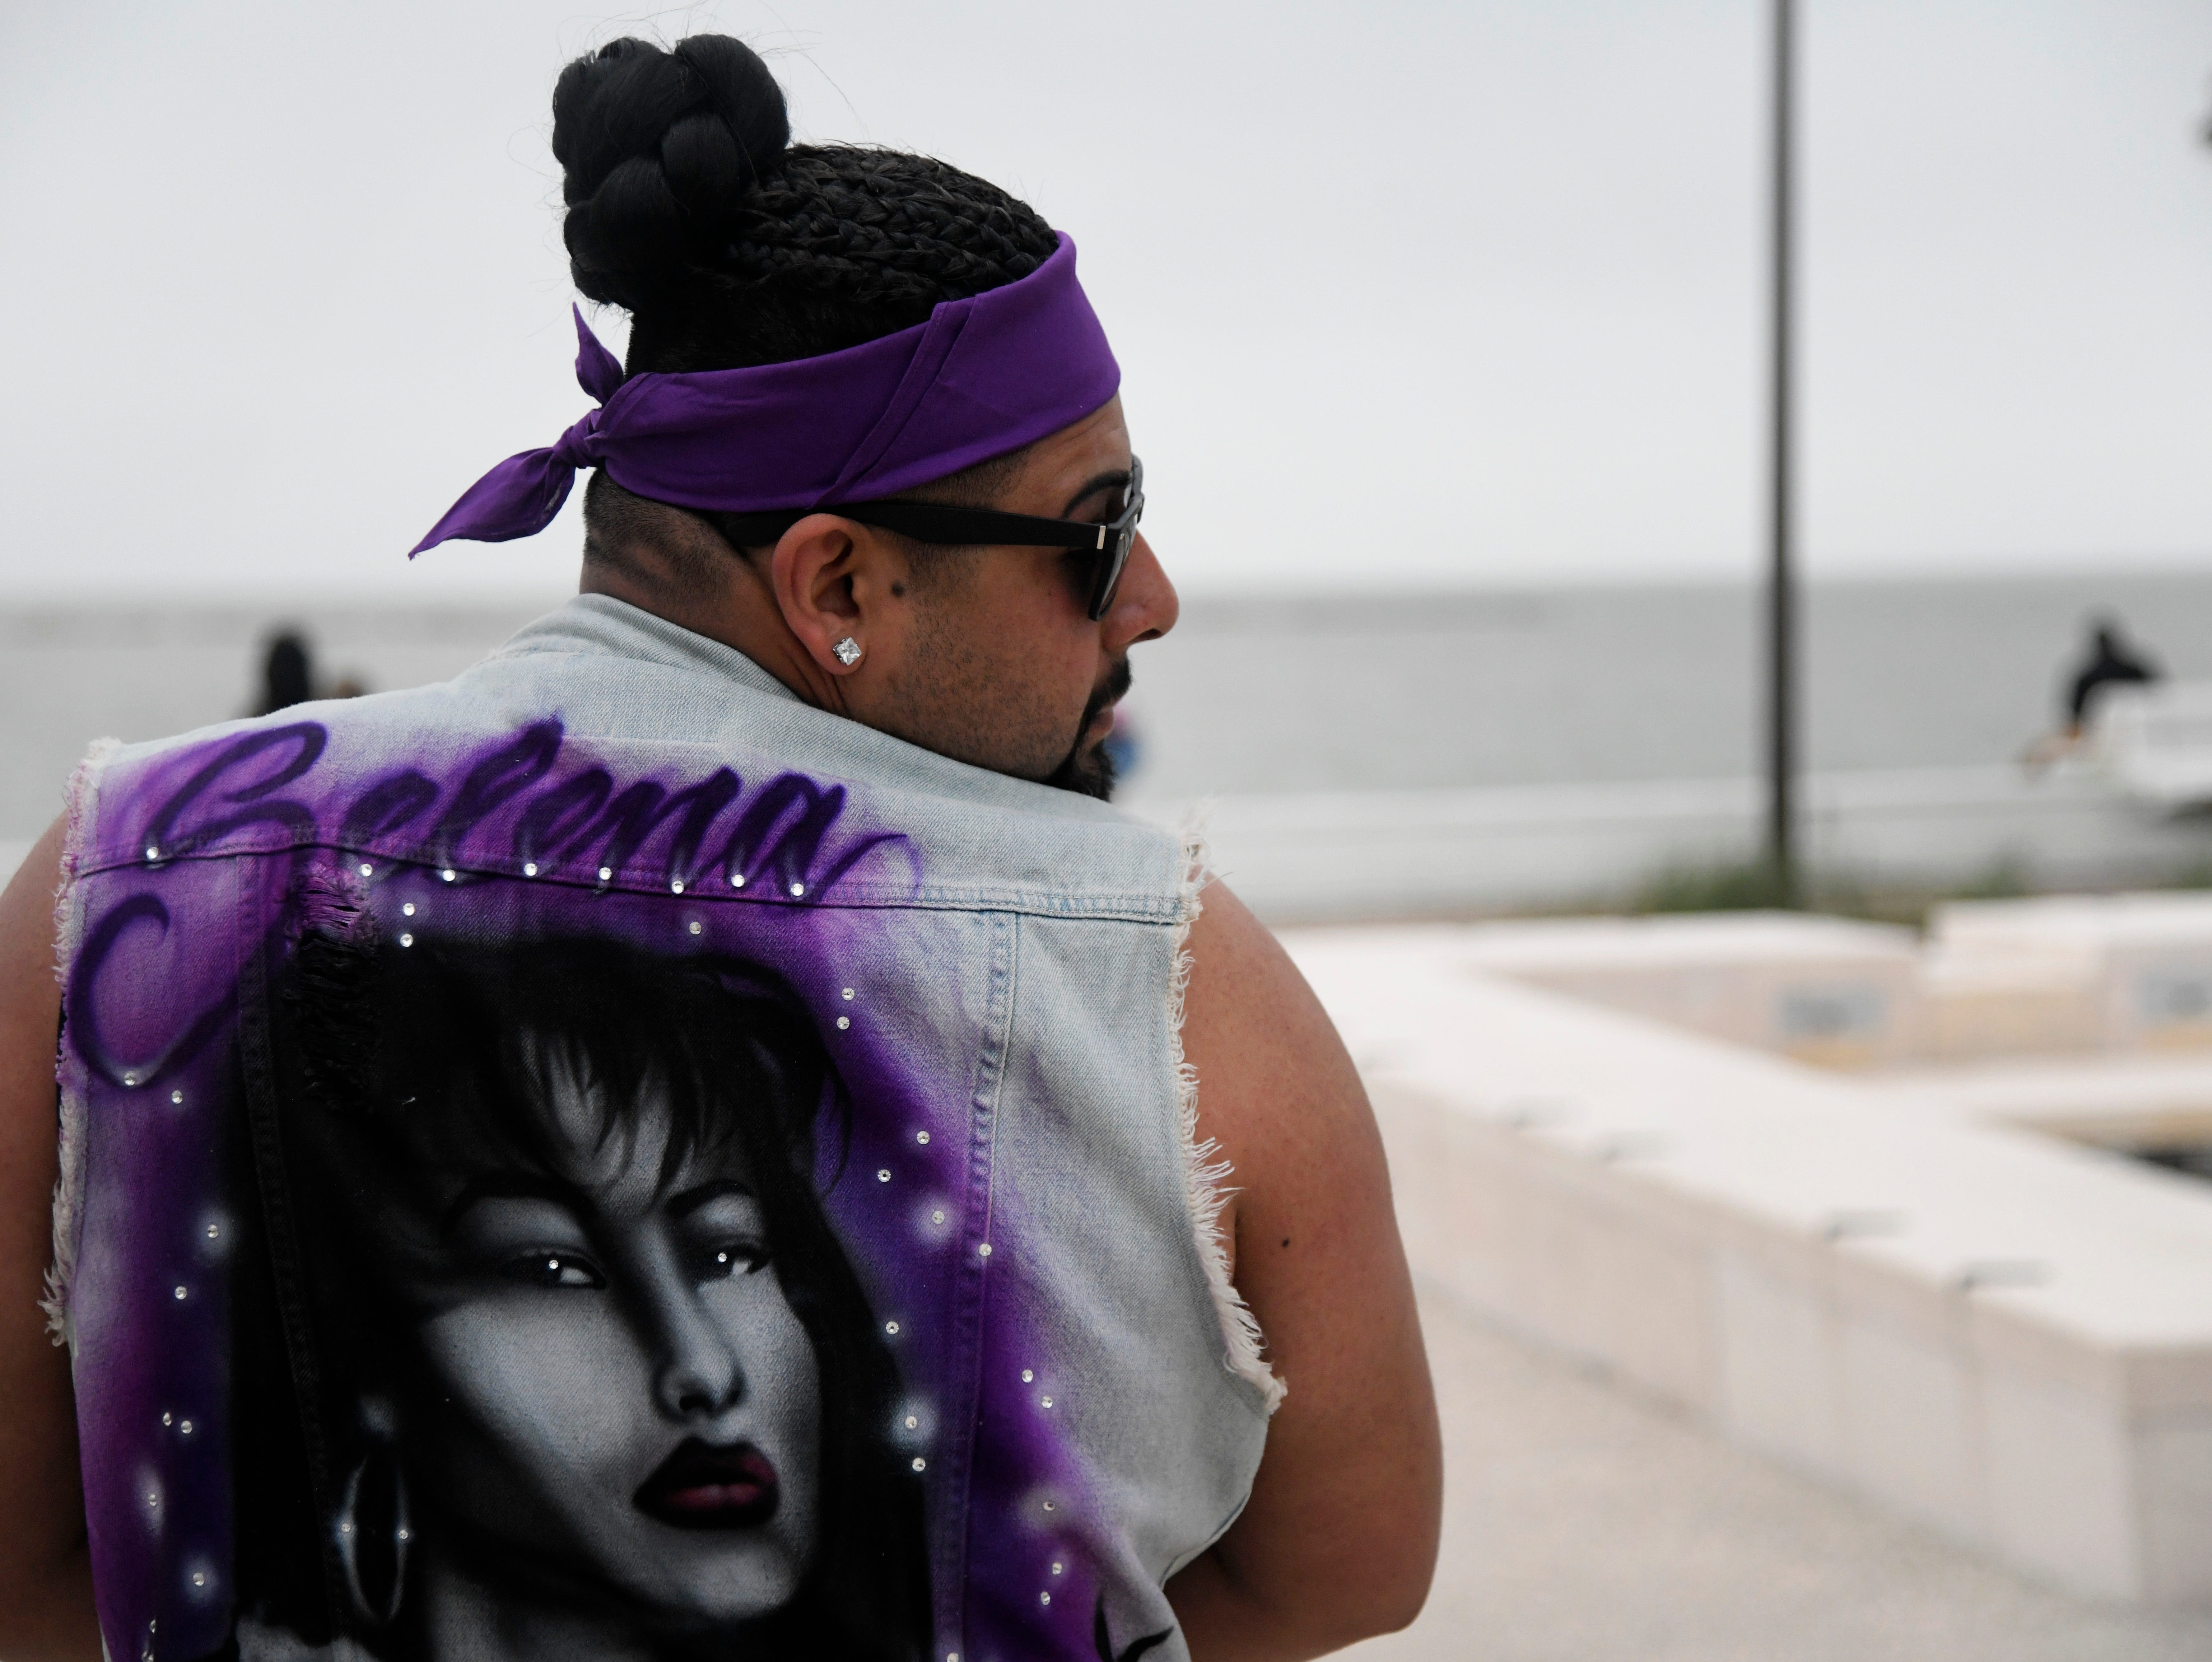 Pedro Morales poses with his denim Selena jacket during the first day of Fiesta de la Flor, Friday, April 12, 2019, at American Bank Center.